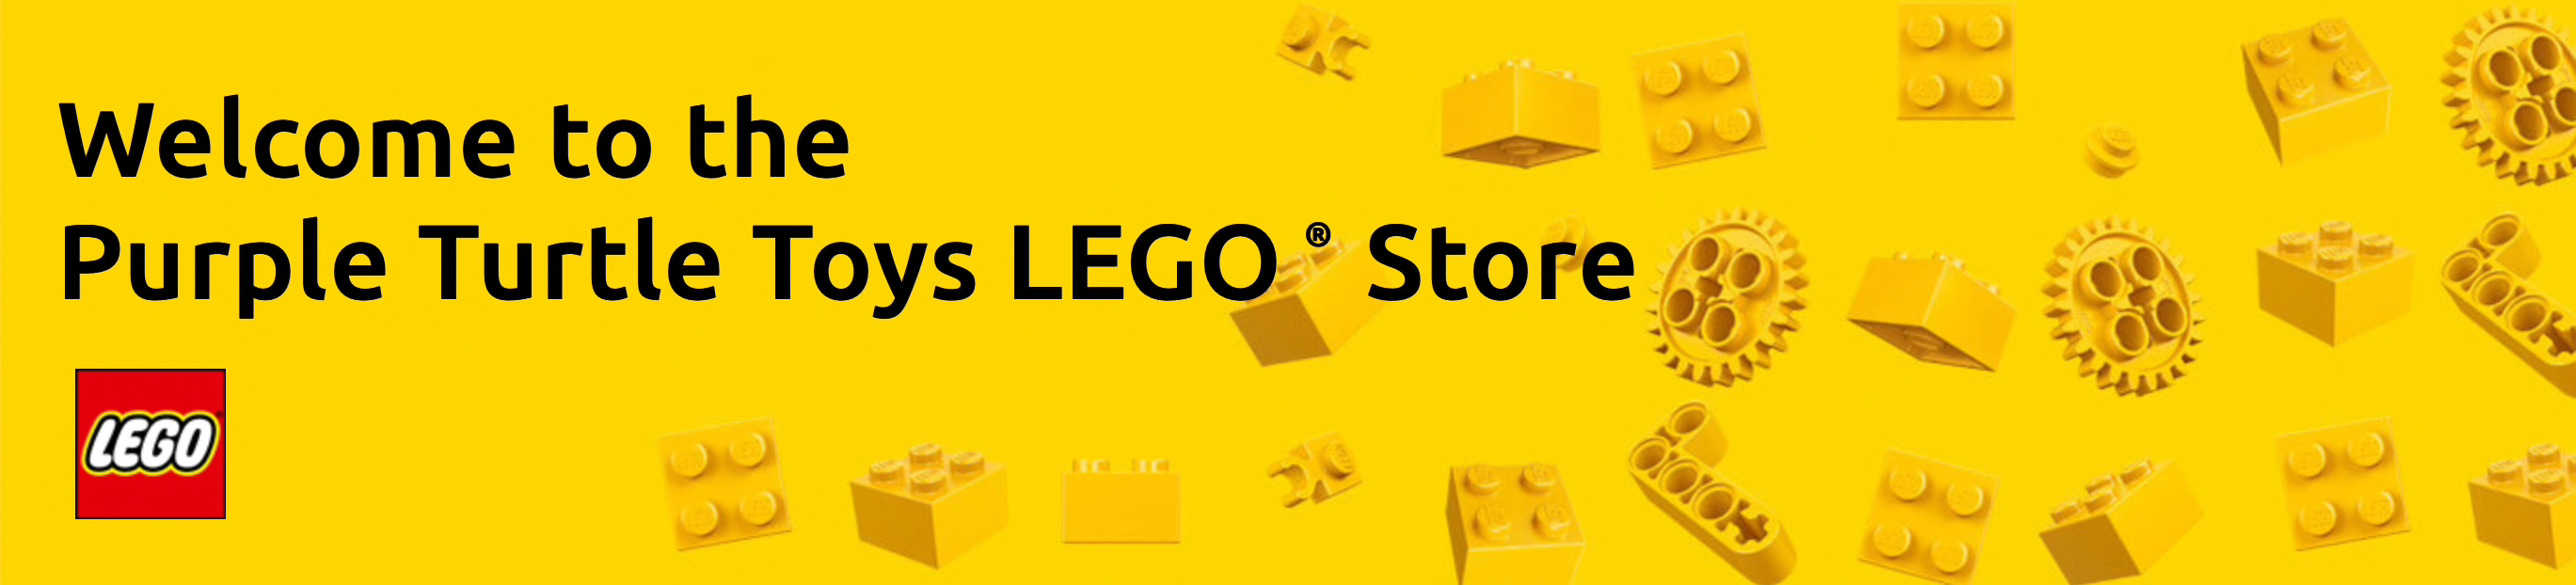 brand-banners-1088x165px-lego.png